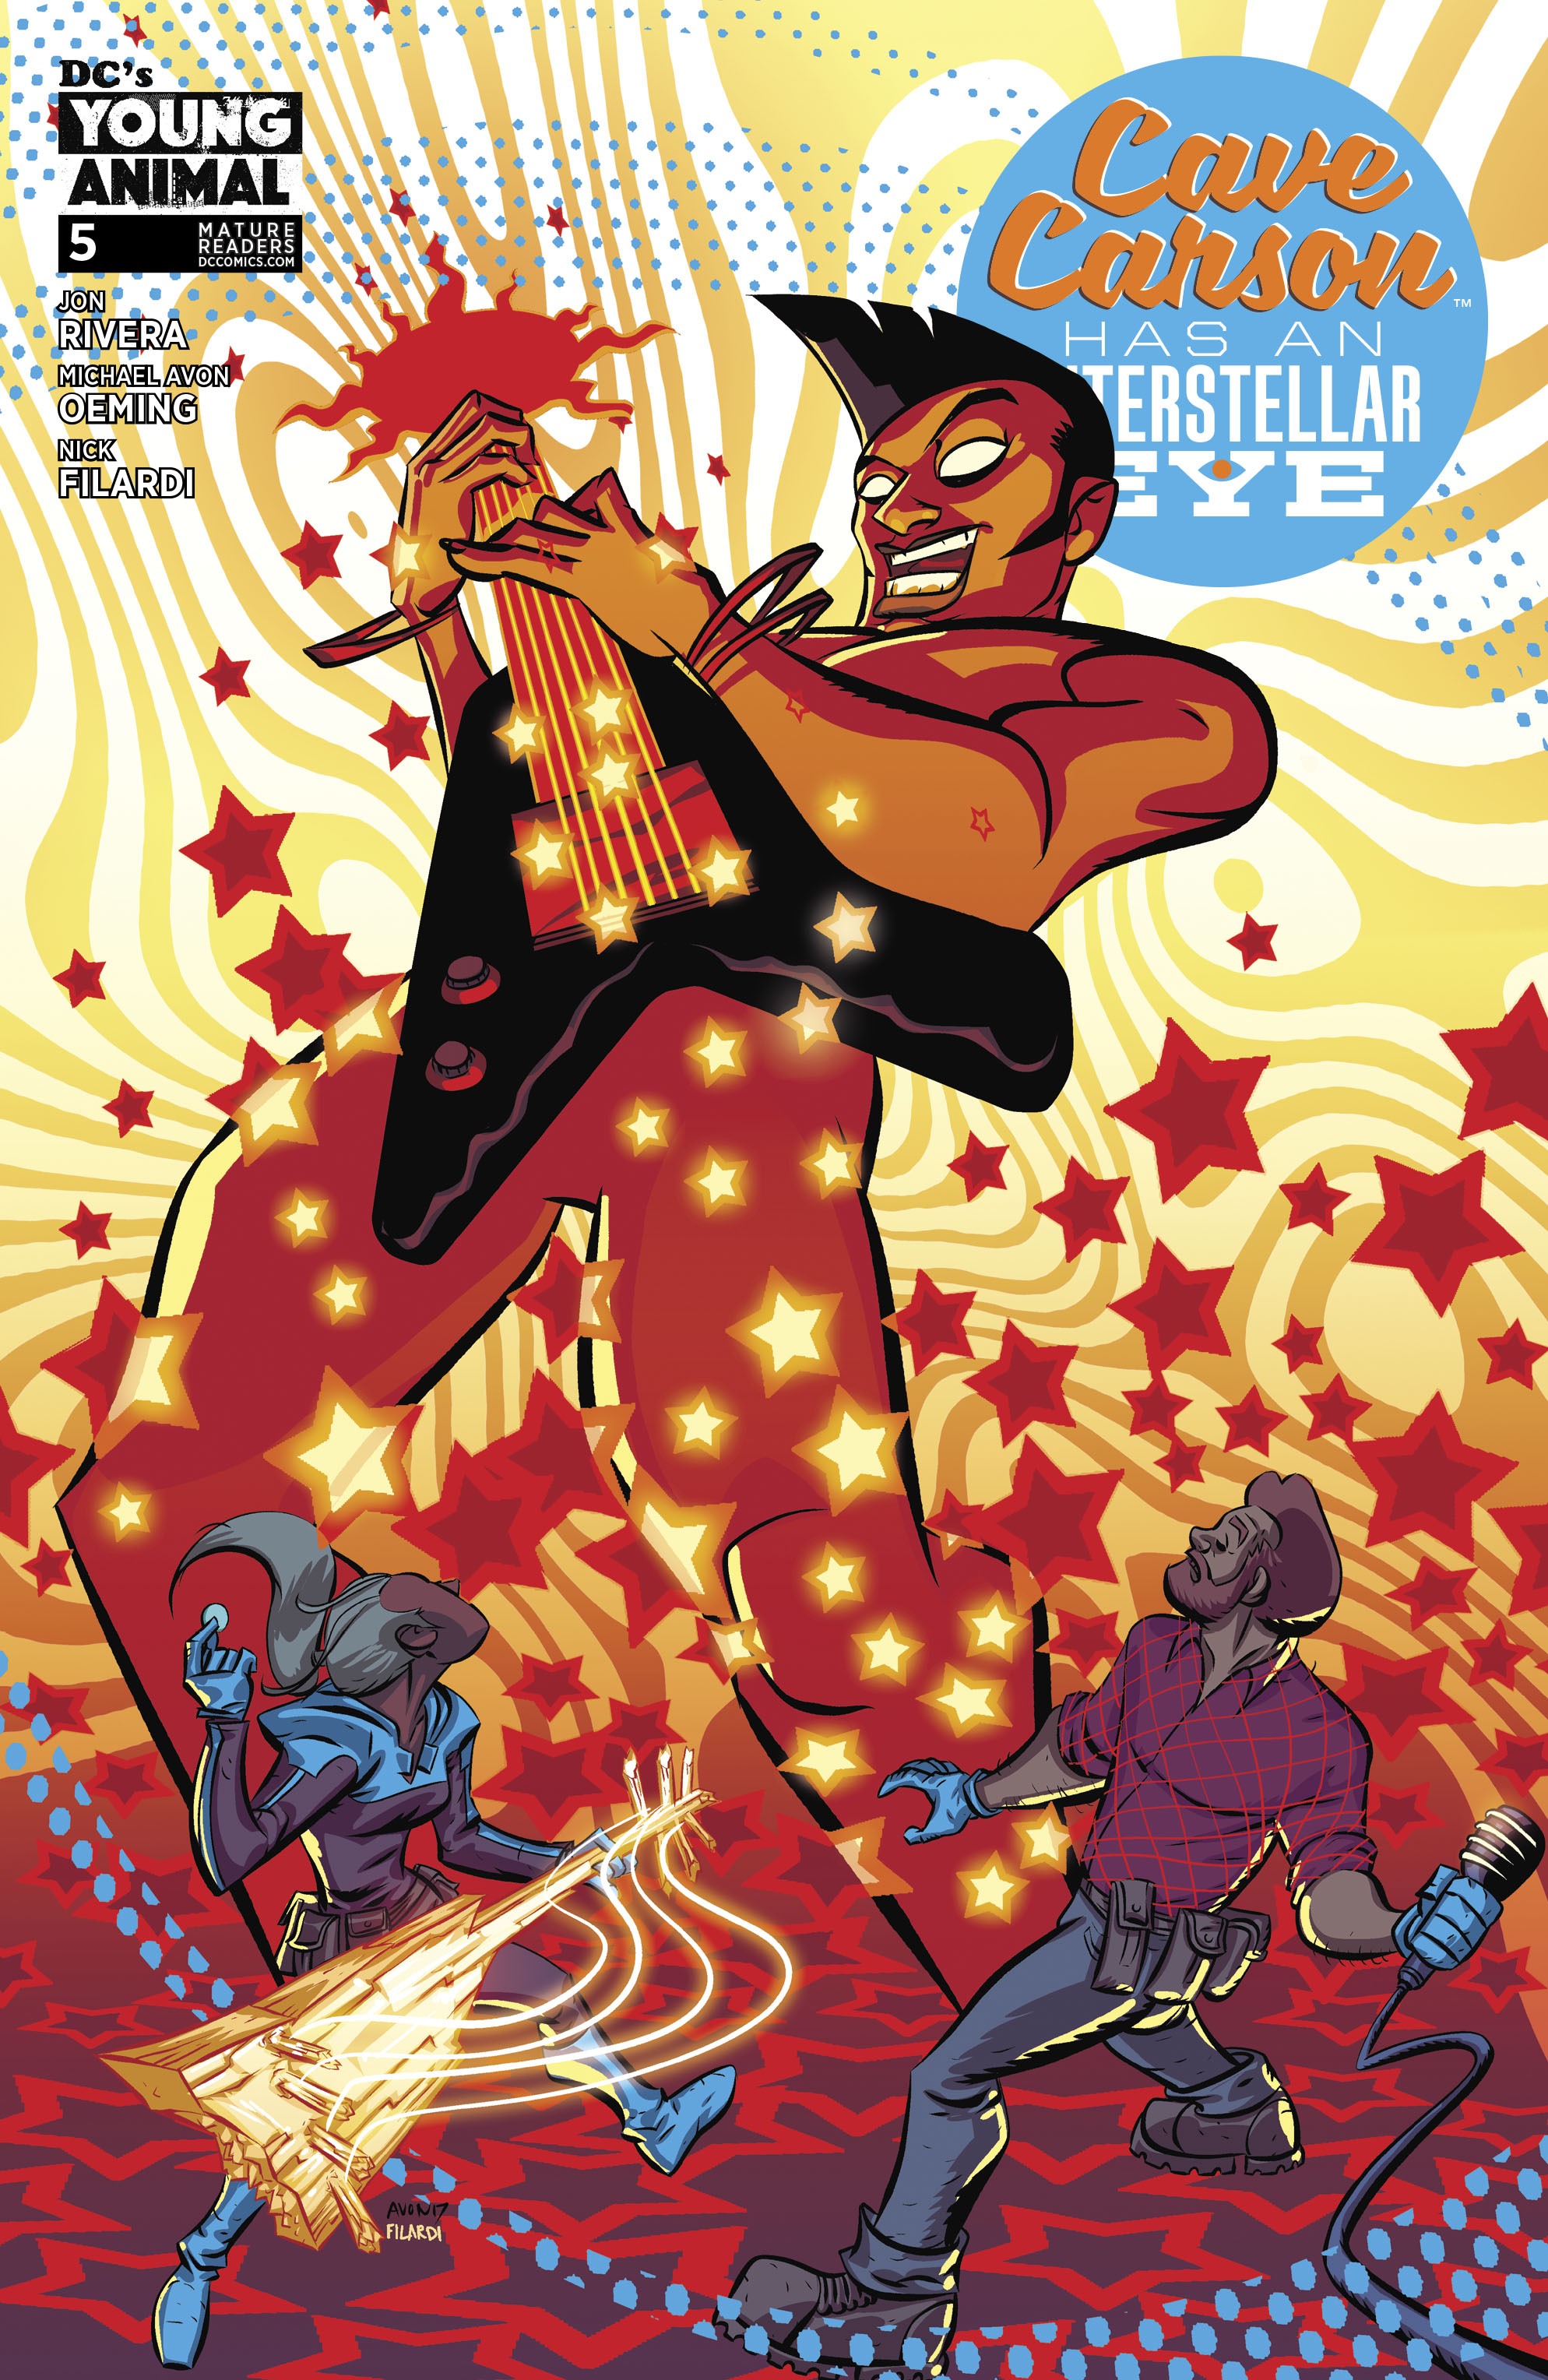 CAVE CARSON HAS AN INTERSTELLAR EYE #5 (MR)